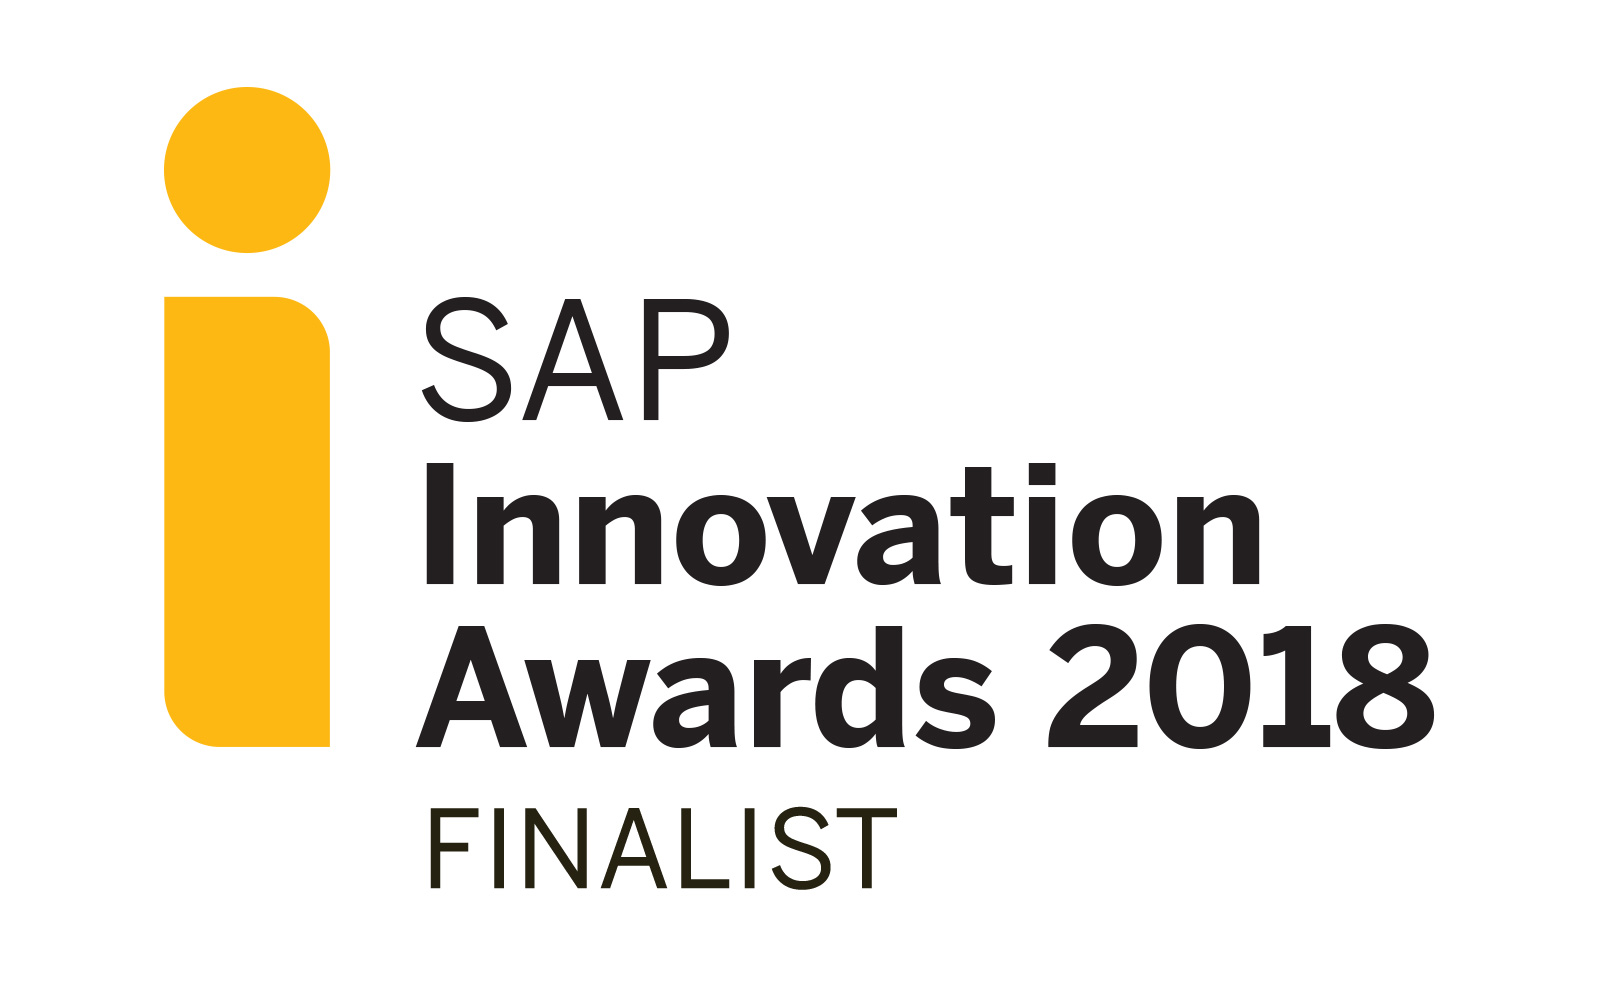 SAPIA2018 FINALIST LOGO GOLD BLACK LARGE JPG - Sonnentracht im Finale bei den SAP Innovation Awards